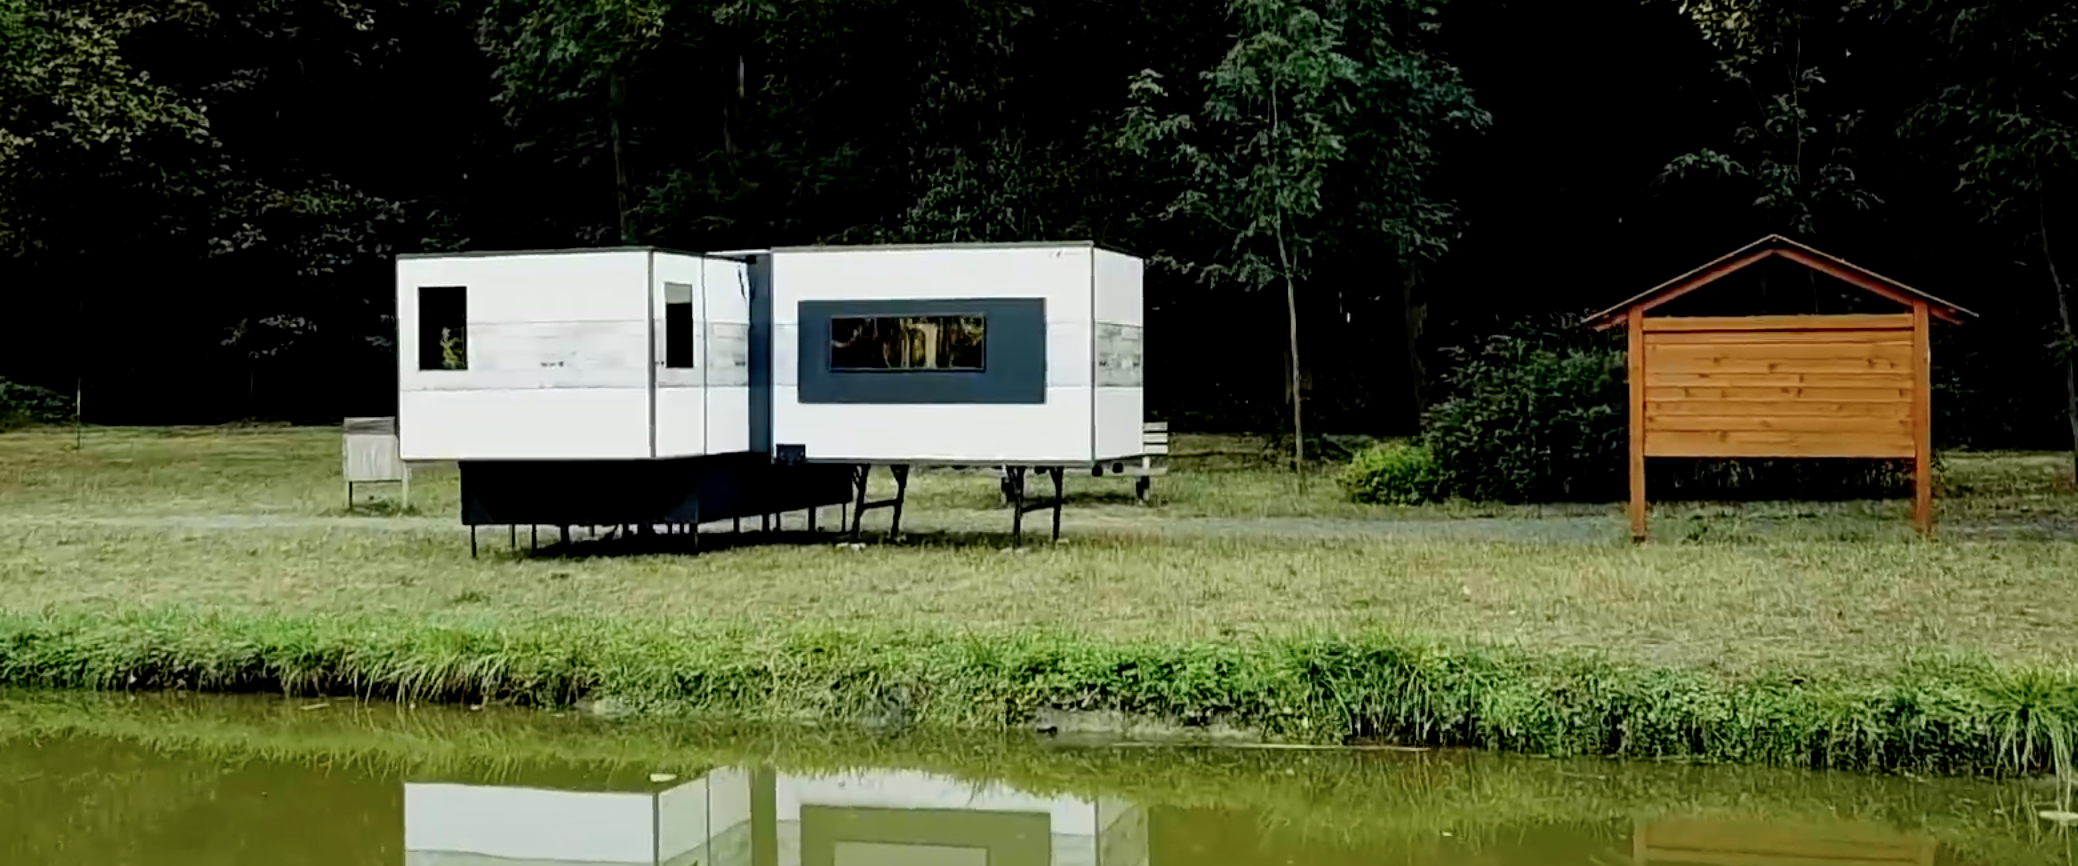 Extendable Camper - Lake